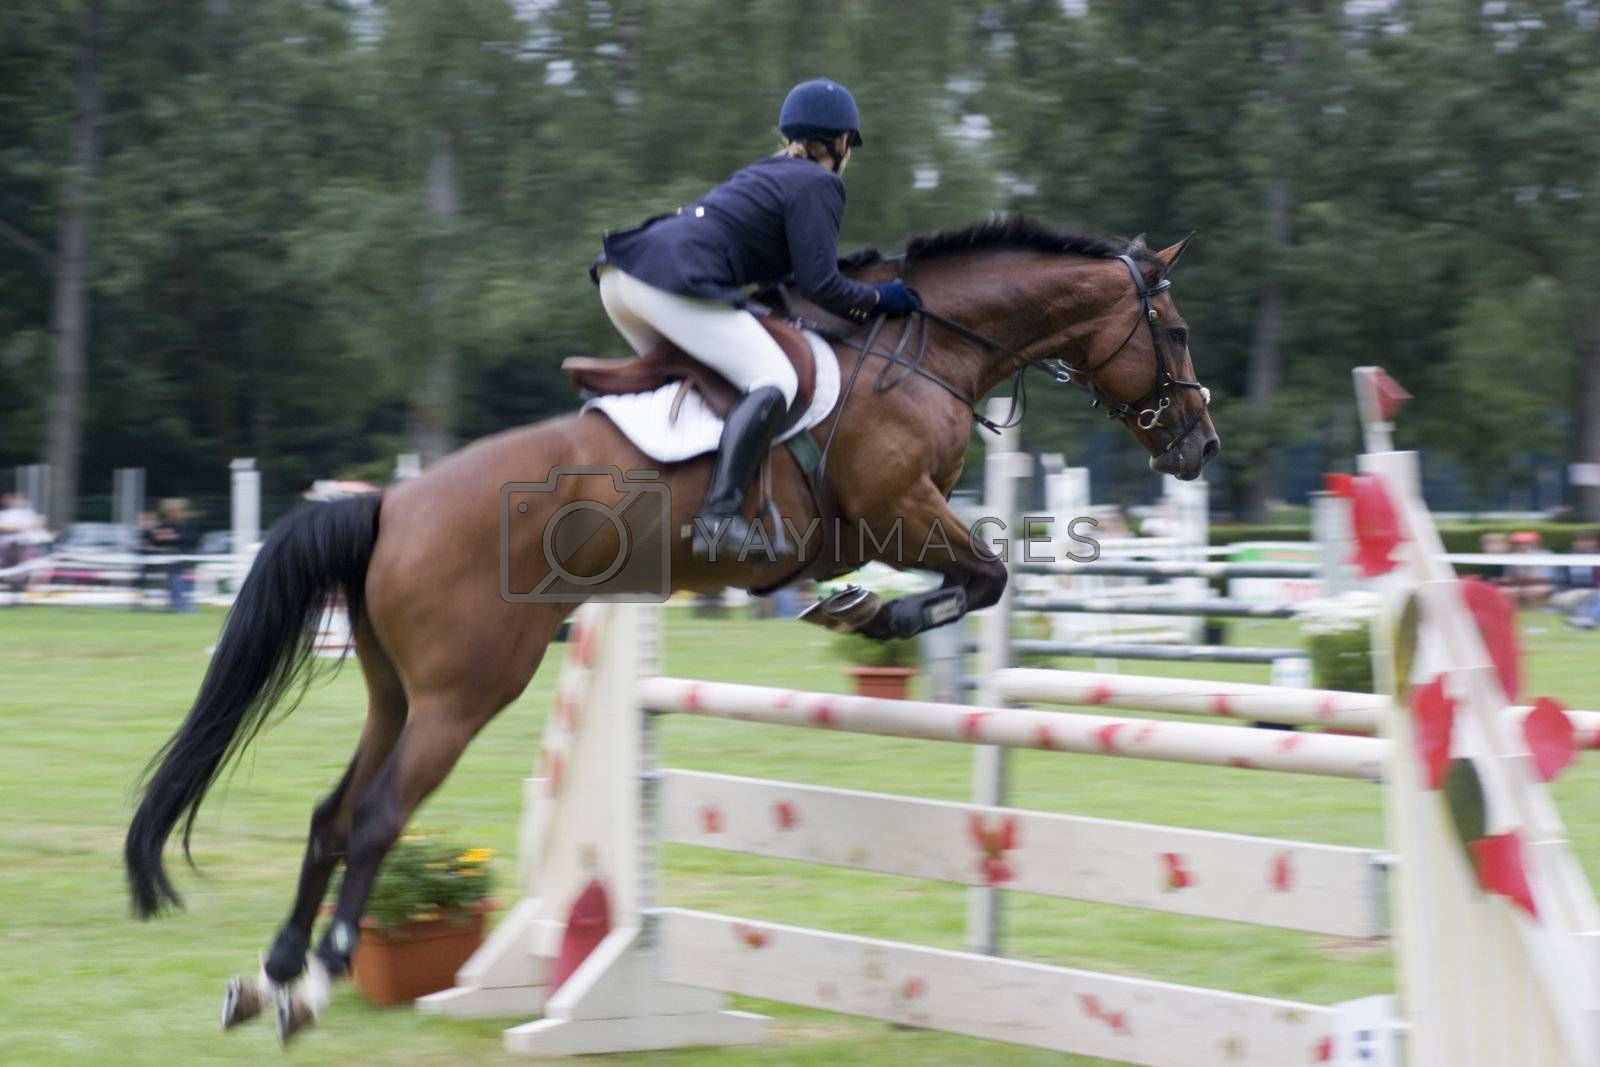 Show jumping by ArtmannWitte